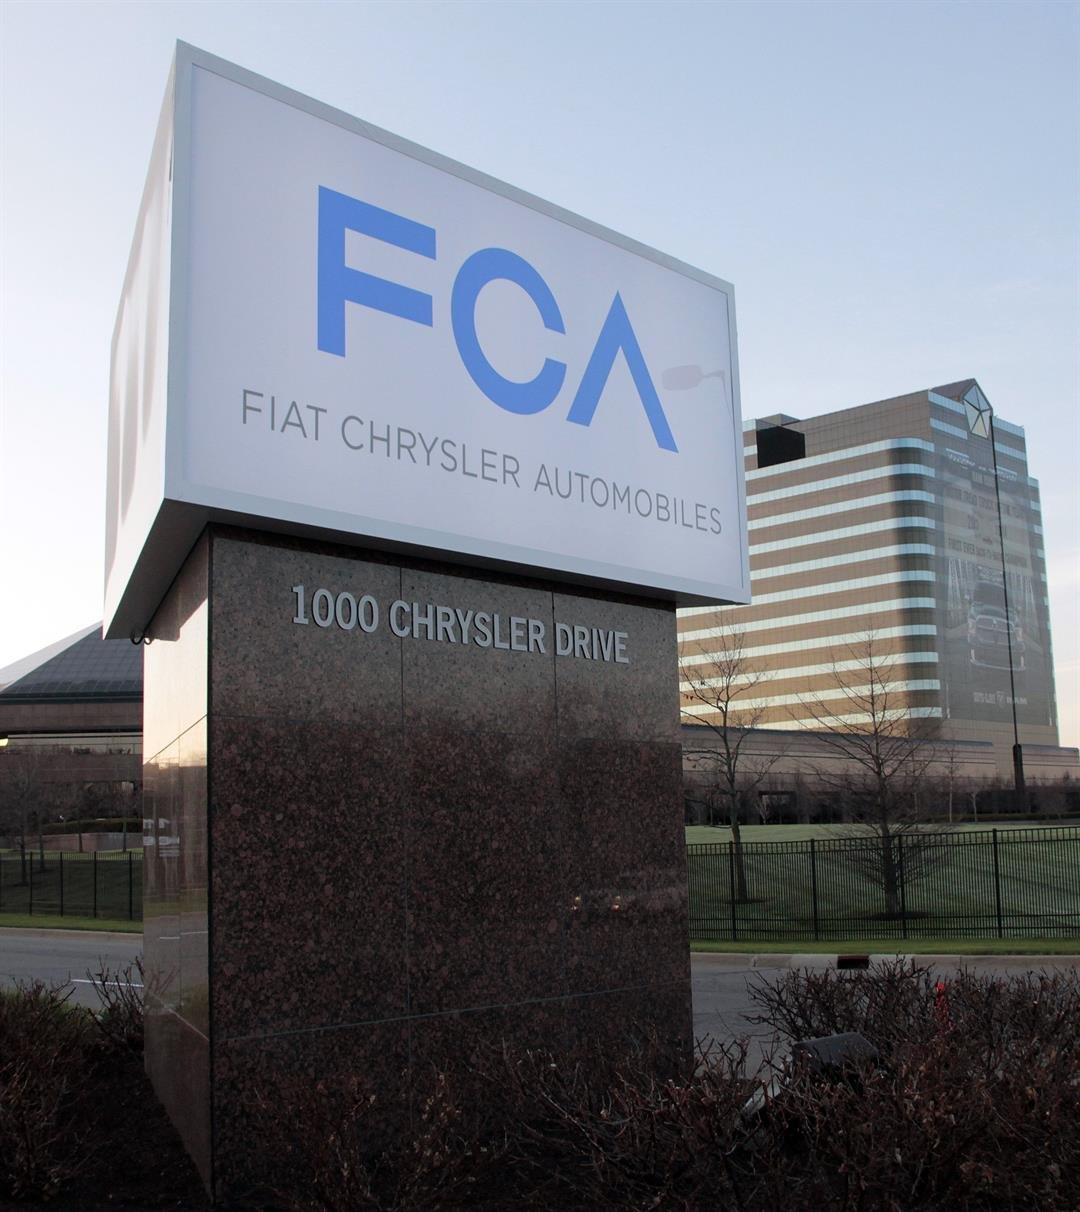 Fiat Chrysler to develop self-driving auto platform with BMW, Intel, Mobileye